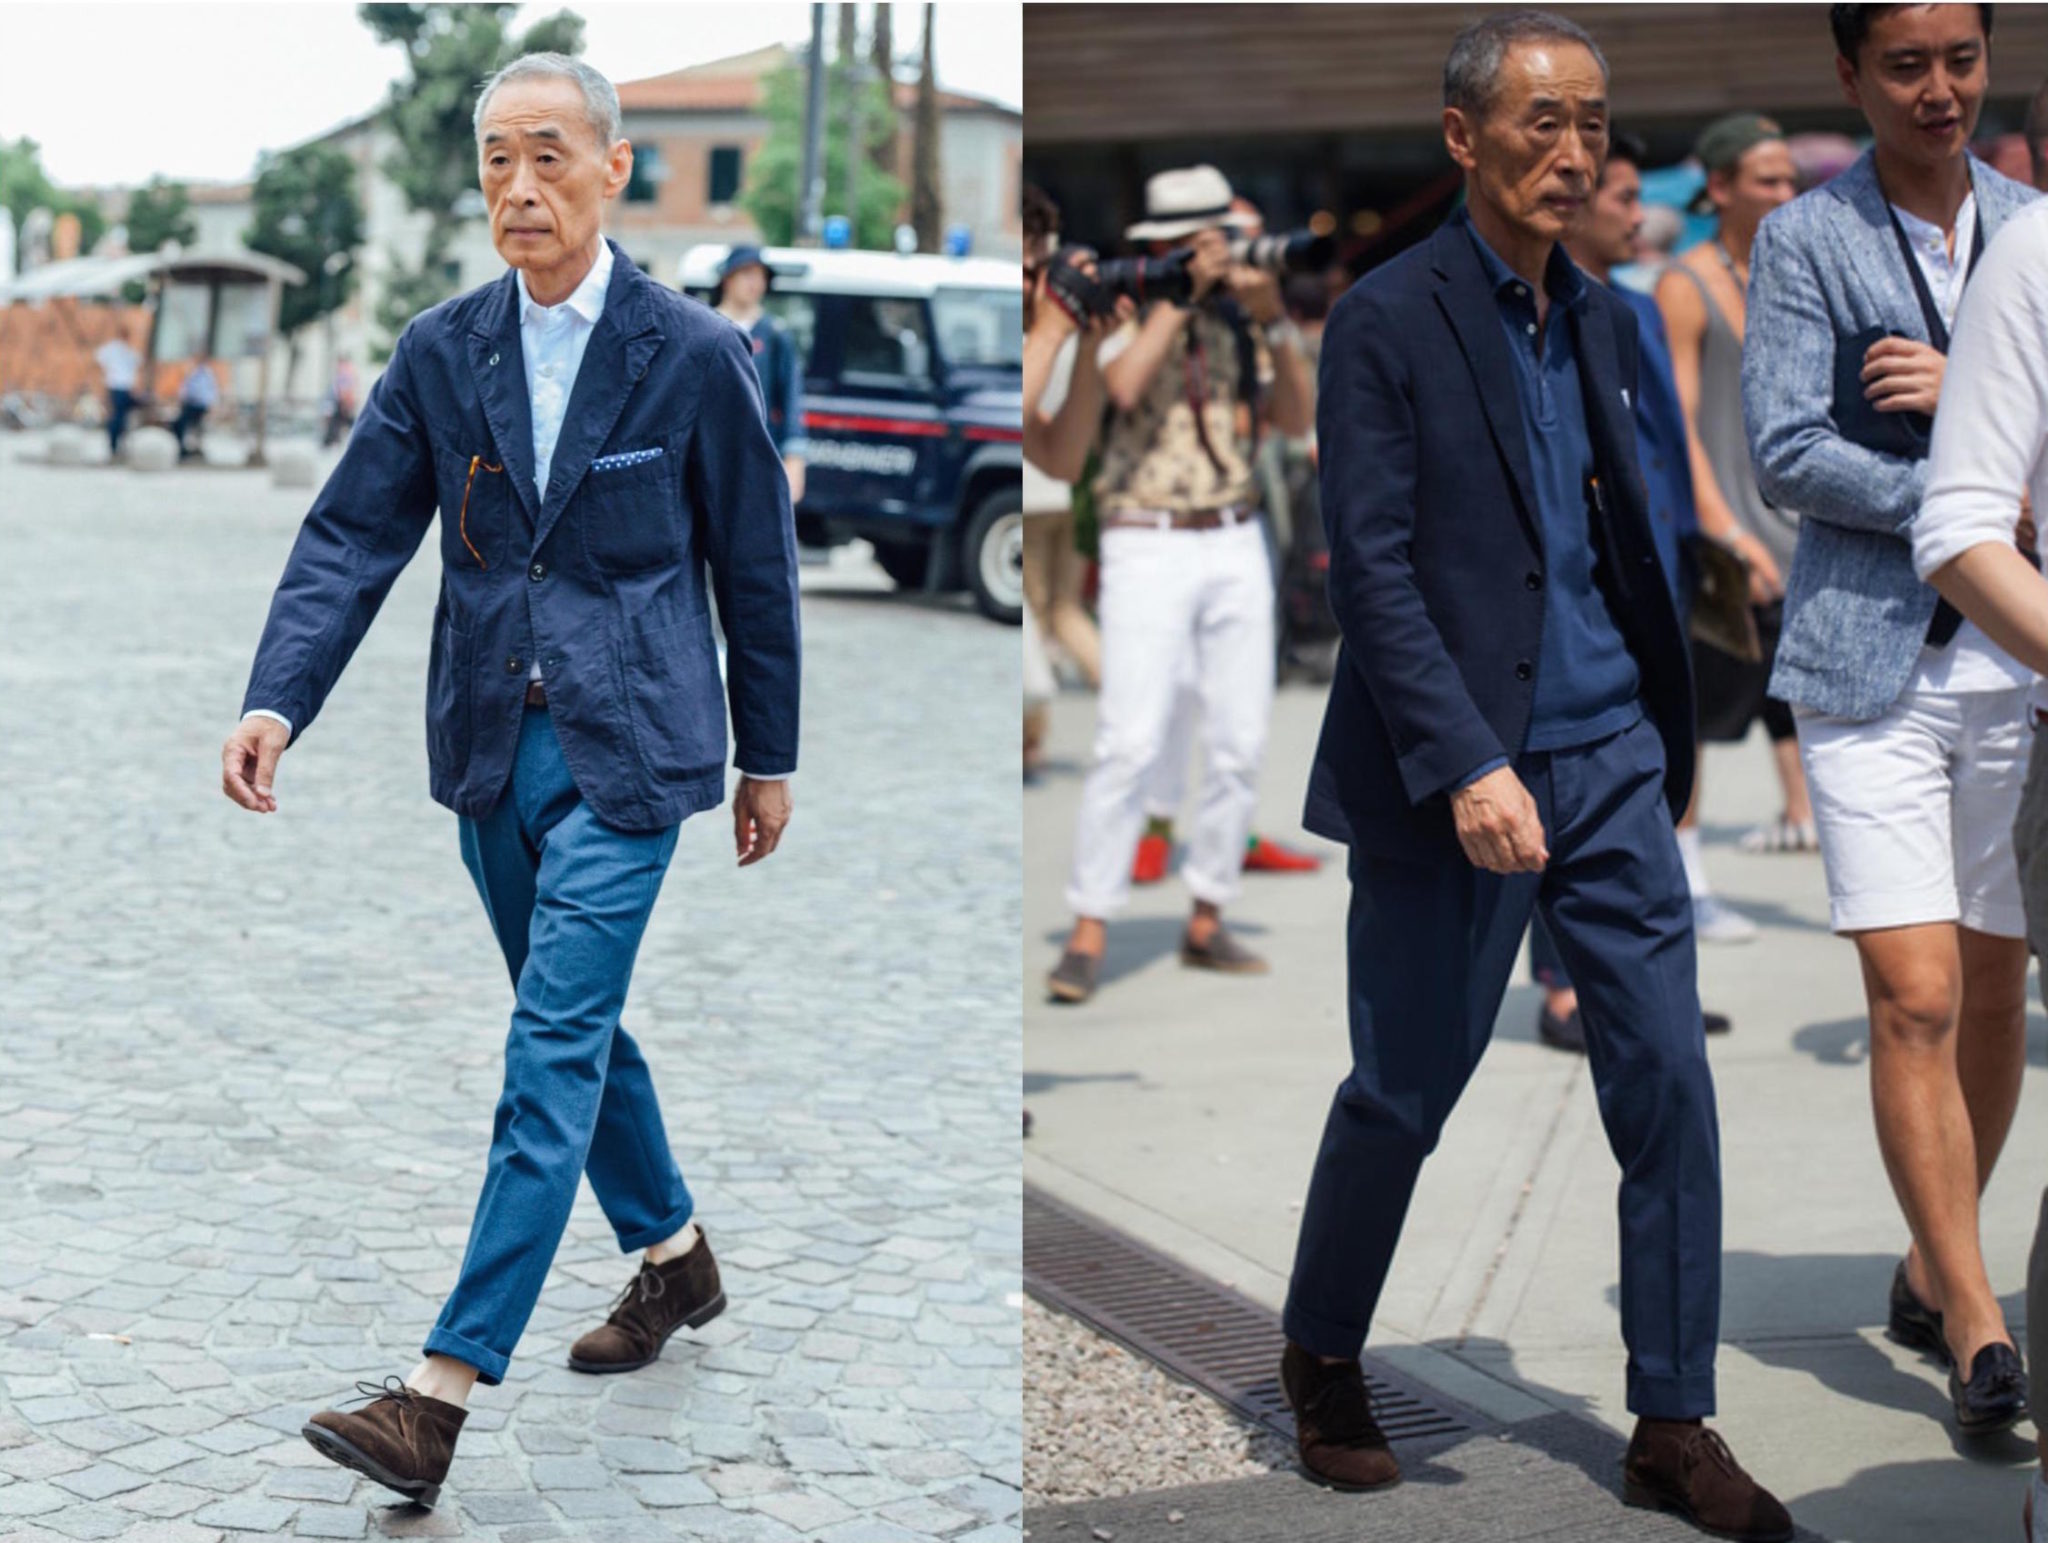 japanese_man_pitti.jpg